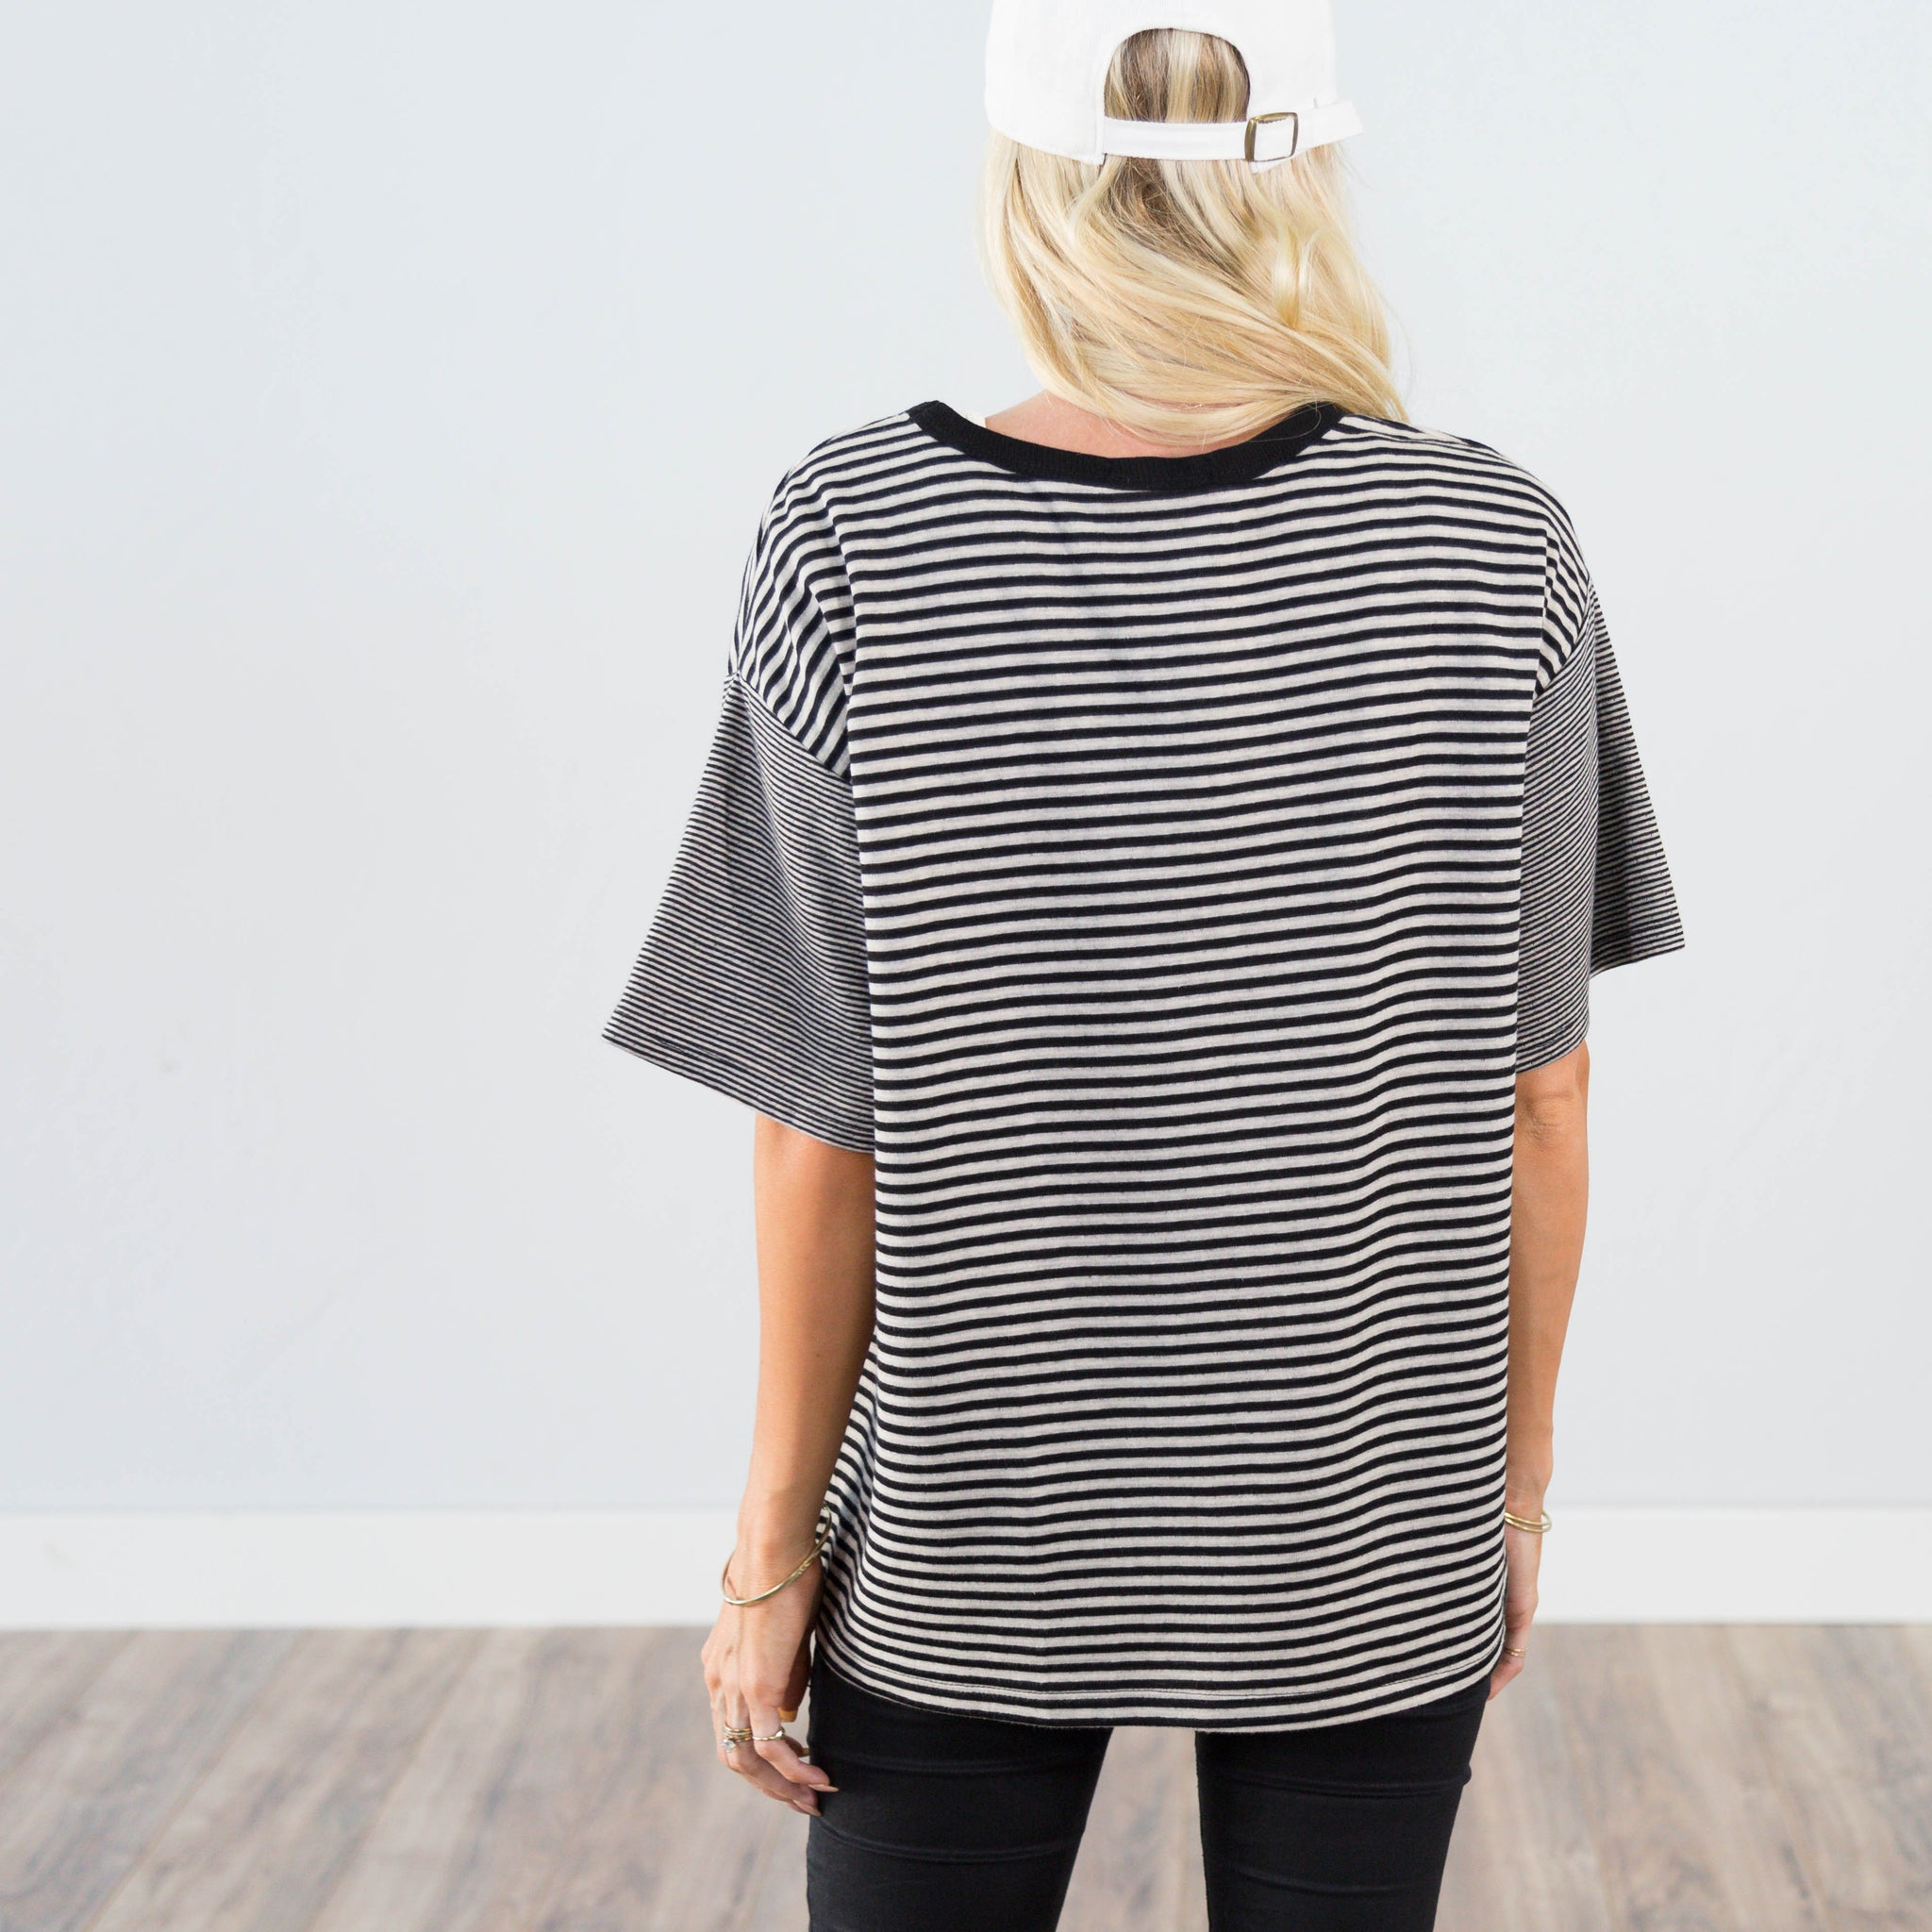 Vintage Stripes Top